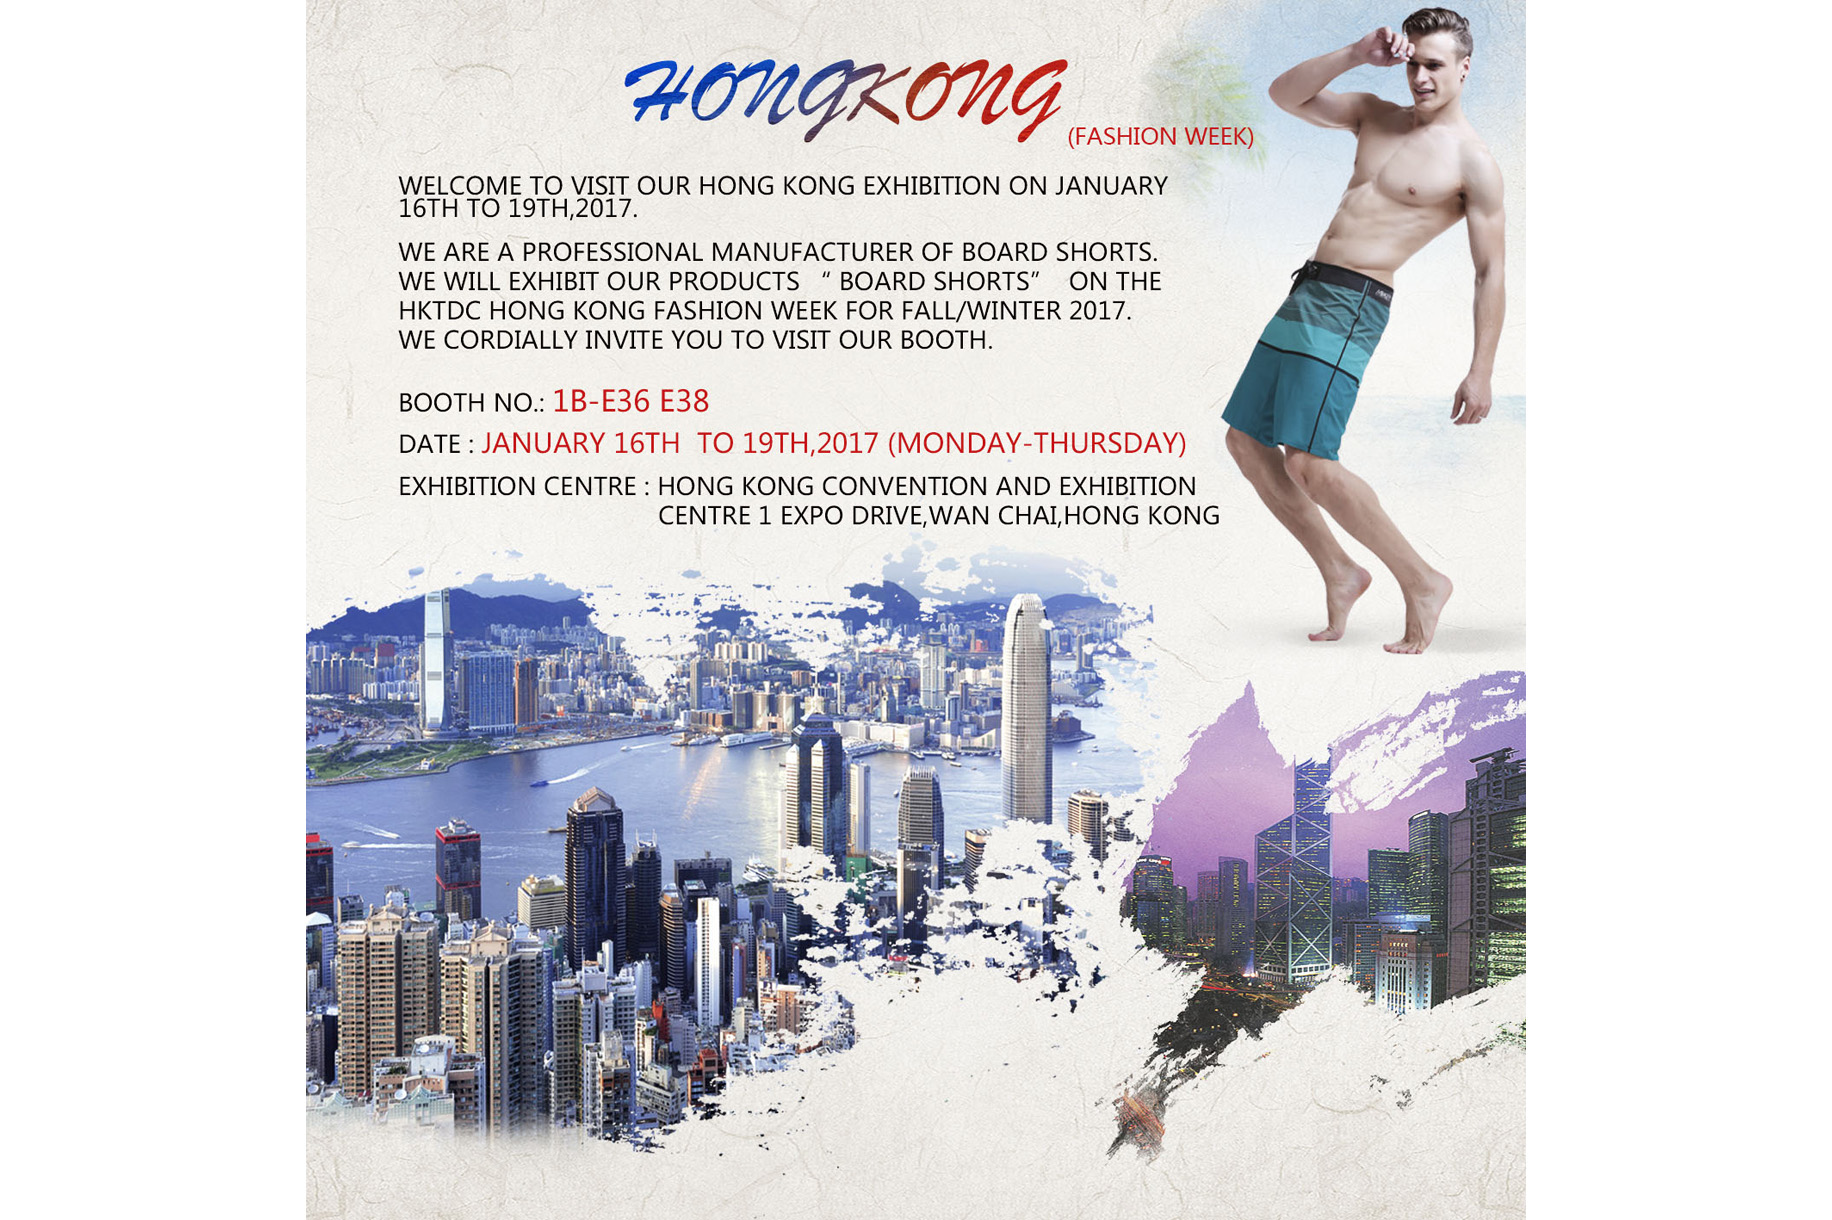 WEICOME TO VISIT OUR HONG KONG EXHIBITION